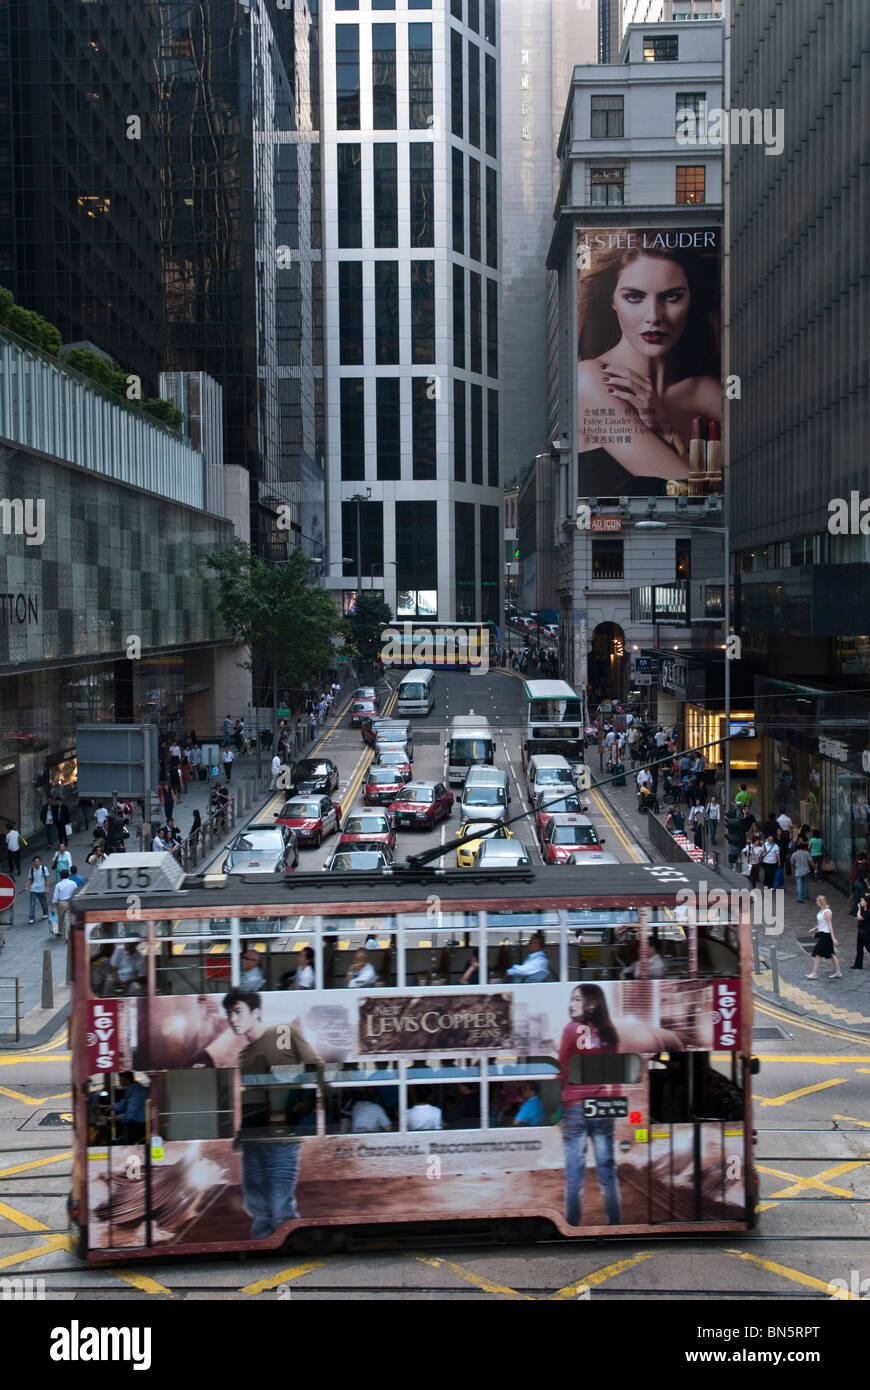 Crossing Pedder Street with Des Voeux Road in Central Hong Kong. Stock Photo